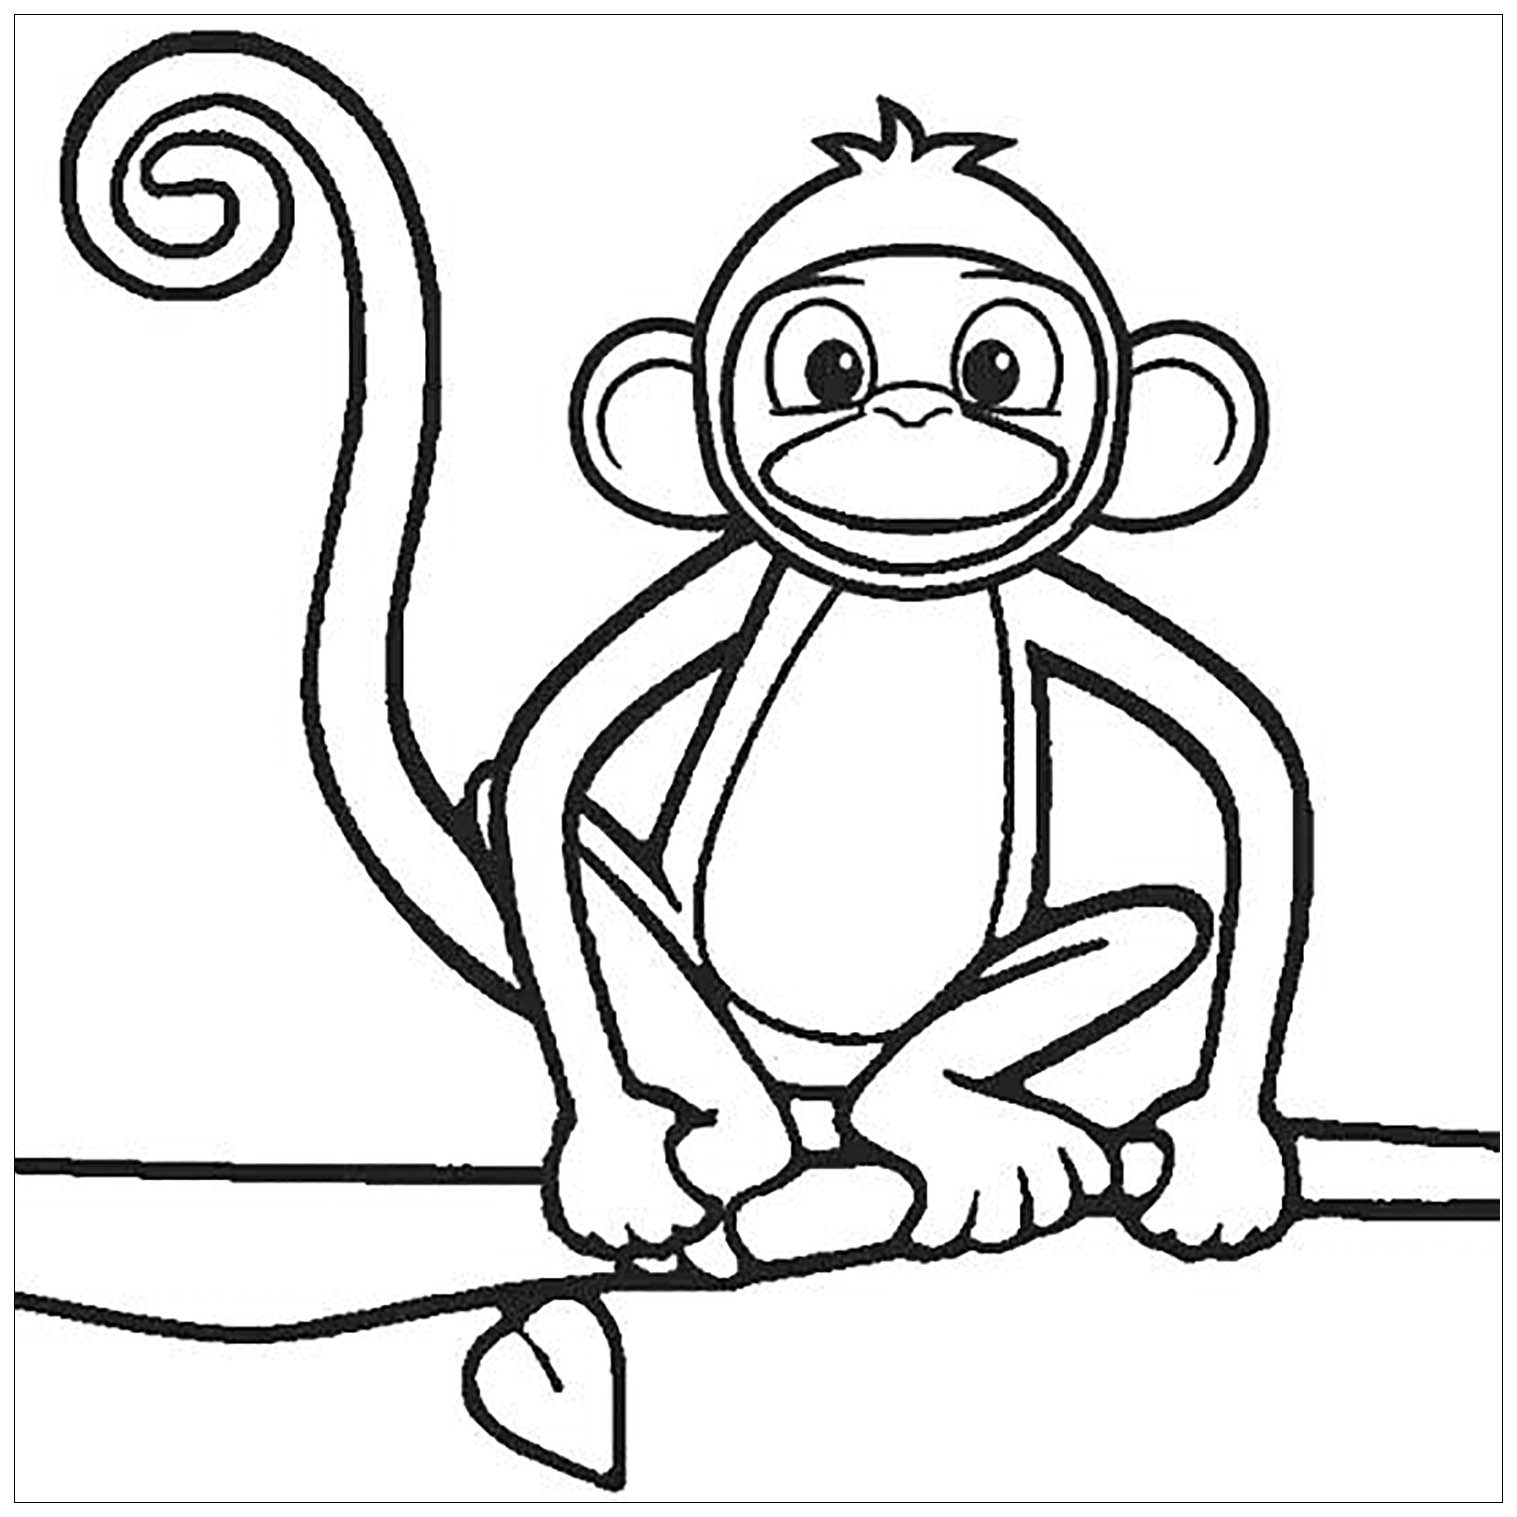 chimpanzee pictures to color monkeys to color for kids monkeys kids coloring pages pictures to chimpanzee color